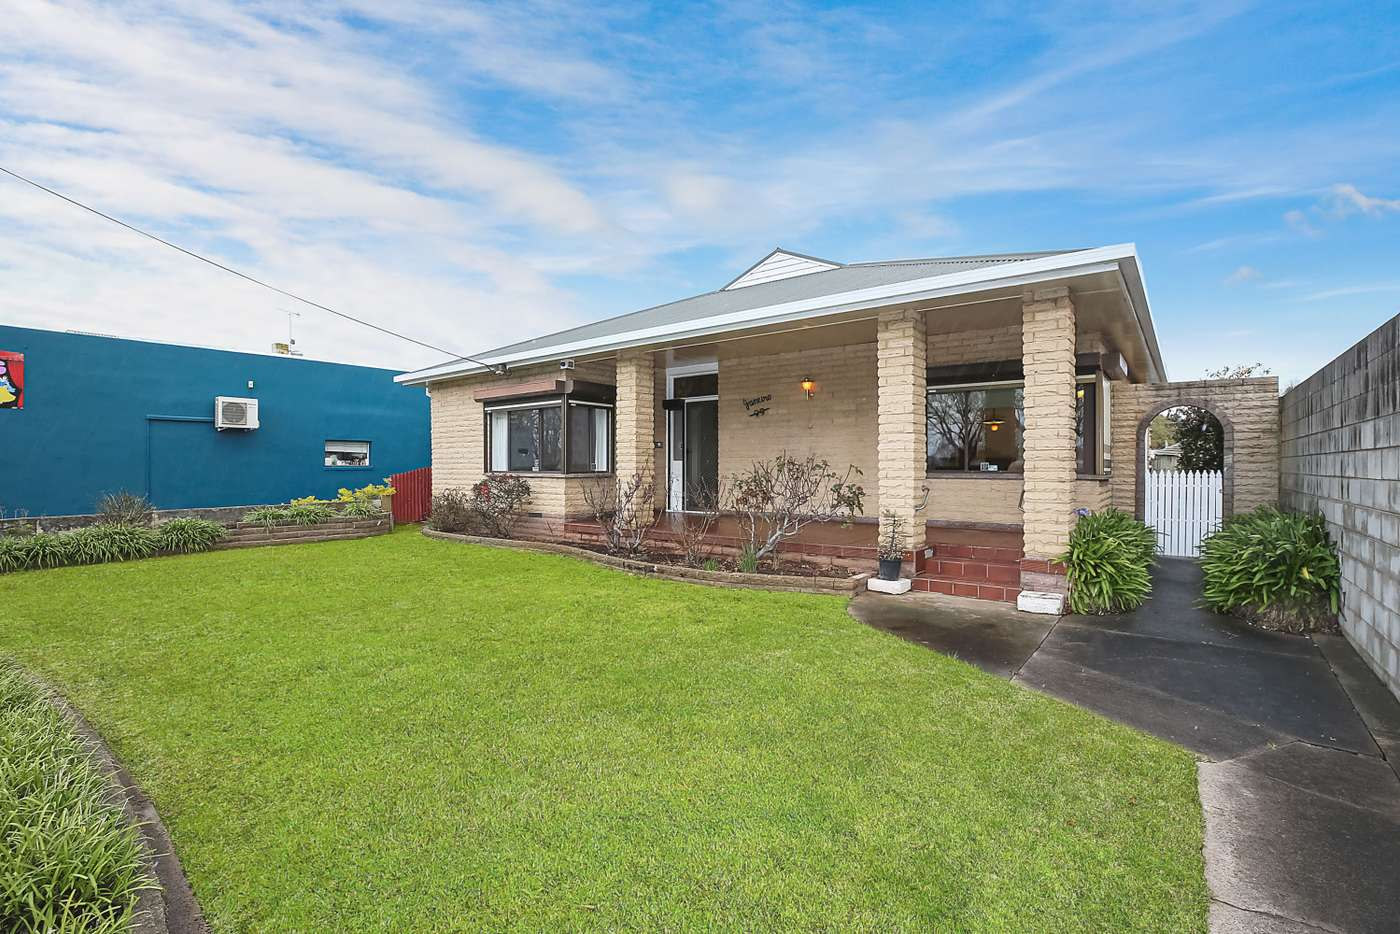 Main view of Homely house listing, 99 Manifold Street, Camperdown VIC 3260